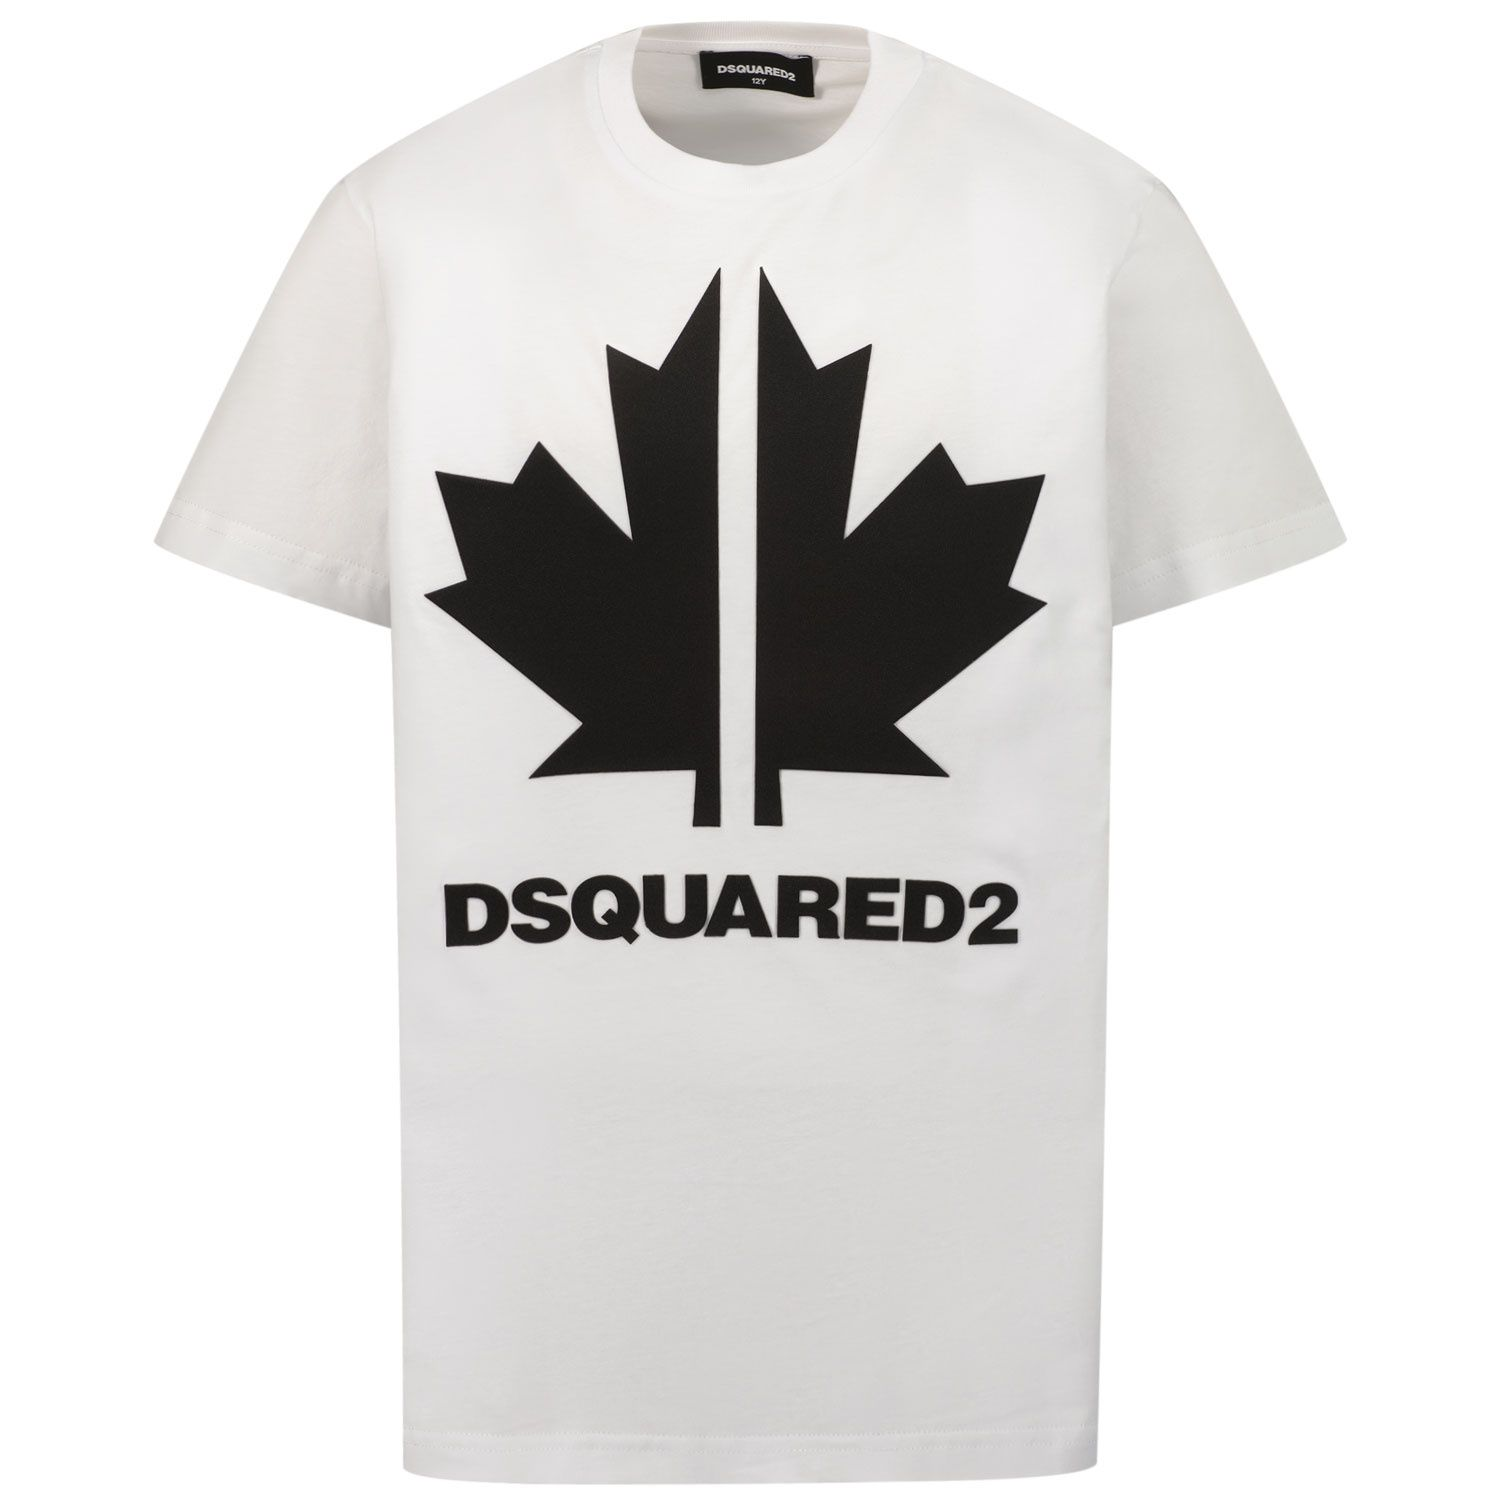 Picture of Dsquared2 DQ0295 kids t-shirt white